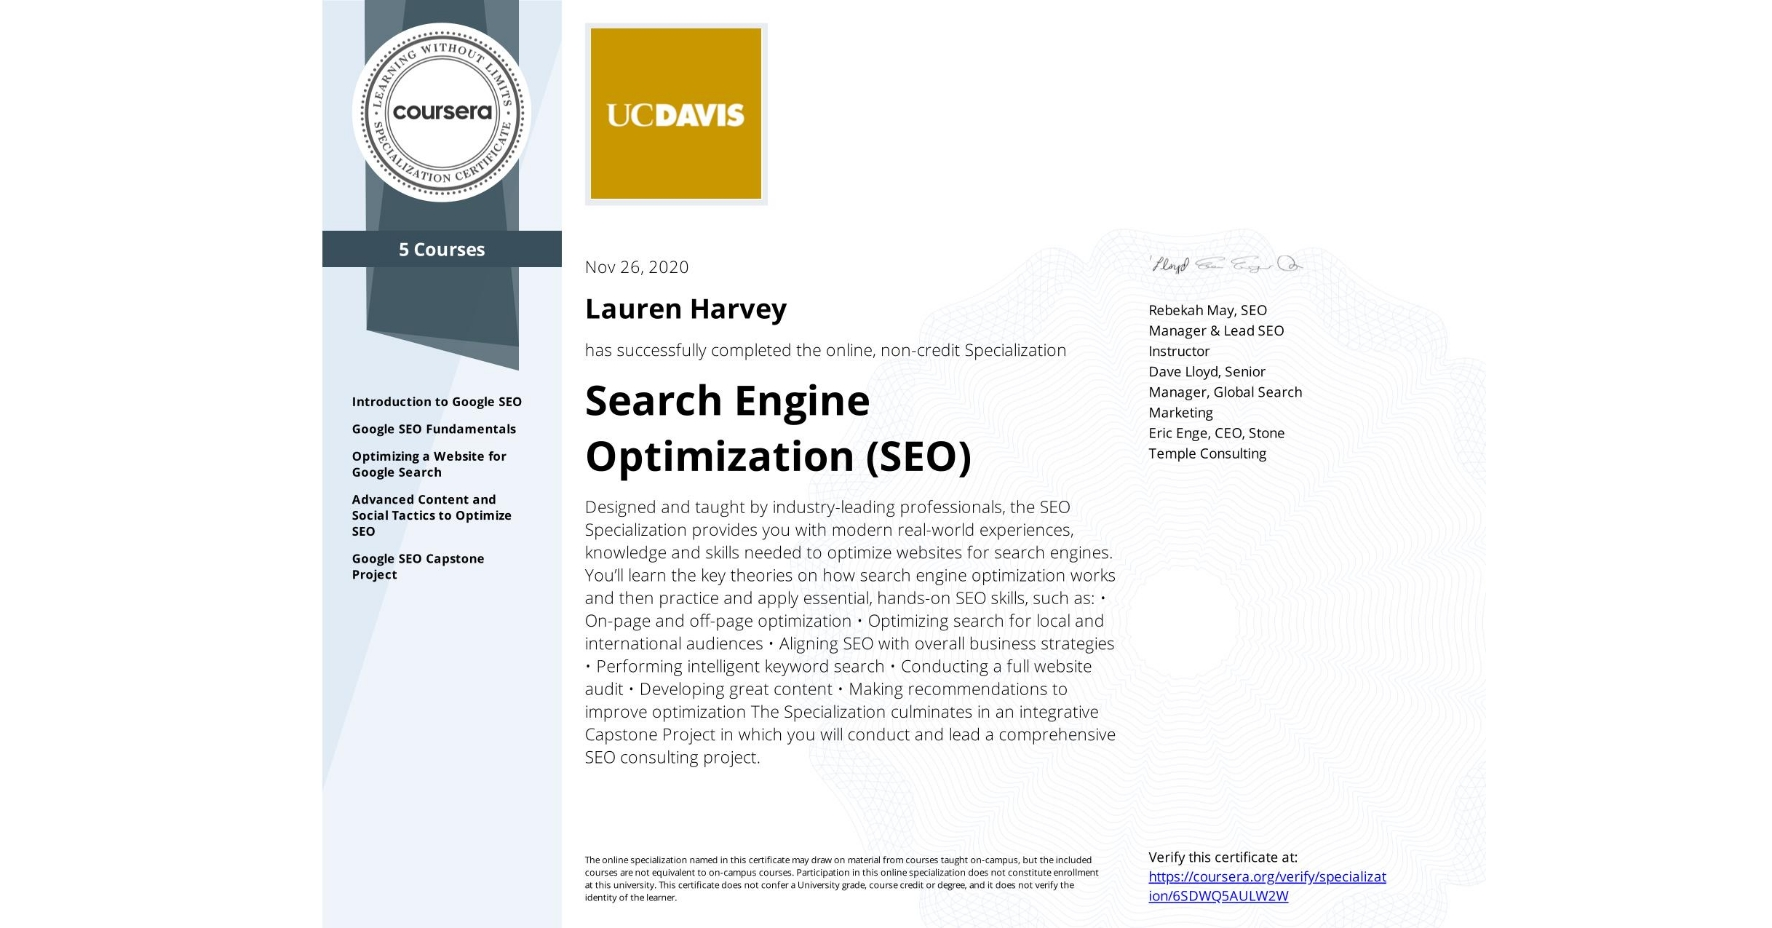 View certificate for Lauren Nicole Harvey, Search Engine Optimization (SEO), offered through Coursera. Designed and taught by industry-leading professionals, the SEO Specialization provides you with modern real-world experiences, knowledge and skills needed to optimize websites for search engines.  You'll learn the key theories on how search engine optimization works and then practice and apply essential, hands-on SEO skills, such as:  • On-page and off-page optimization • Optimizing search for local and international audiences • Aligning SEO with overall business strategies • Performing intelligent keyword search • Conducting a full website audit • Developing great content • Making recommendations to improve optimization  The Specialization culminates in an integrative Capstone Project in which you will conduct and lead a comprehensive SEO consulting project.